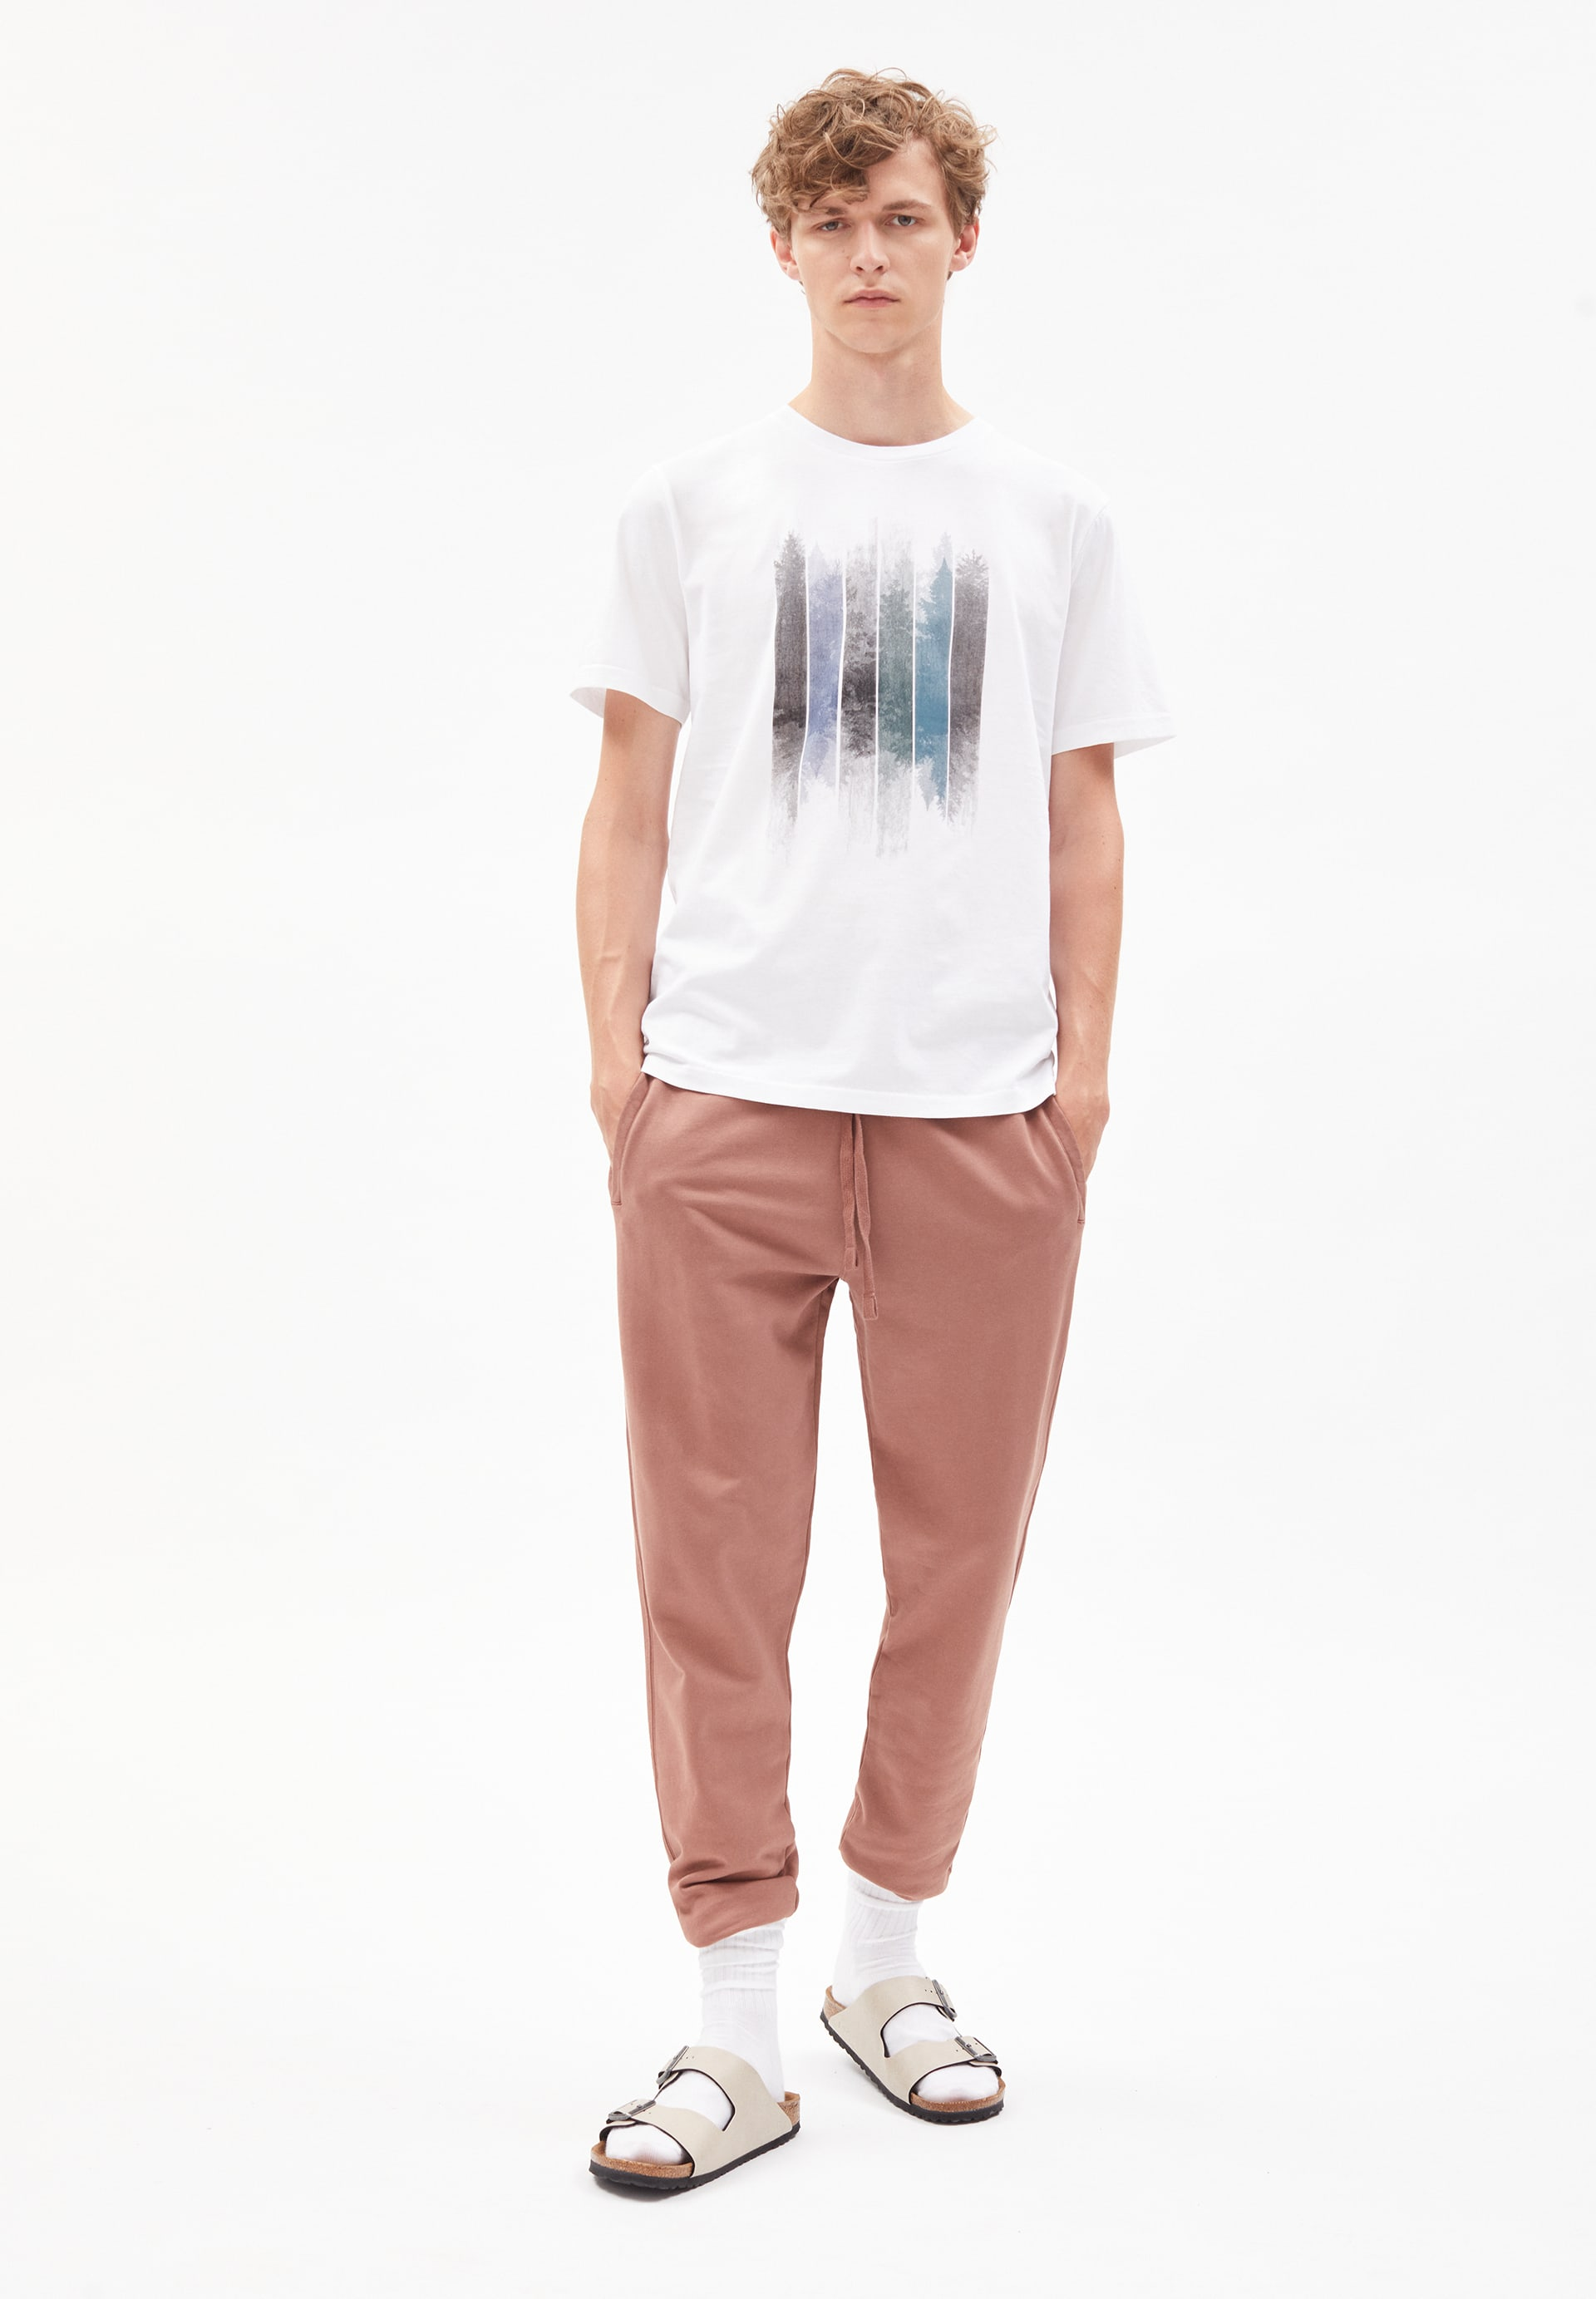 JAAMES PATCHWORK TREES T-Shirt made of Organic Cotton